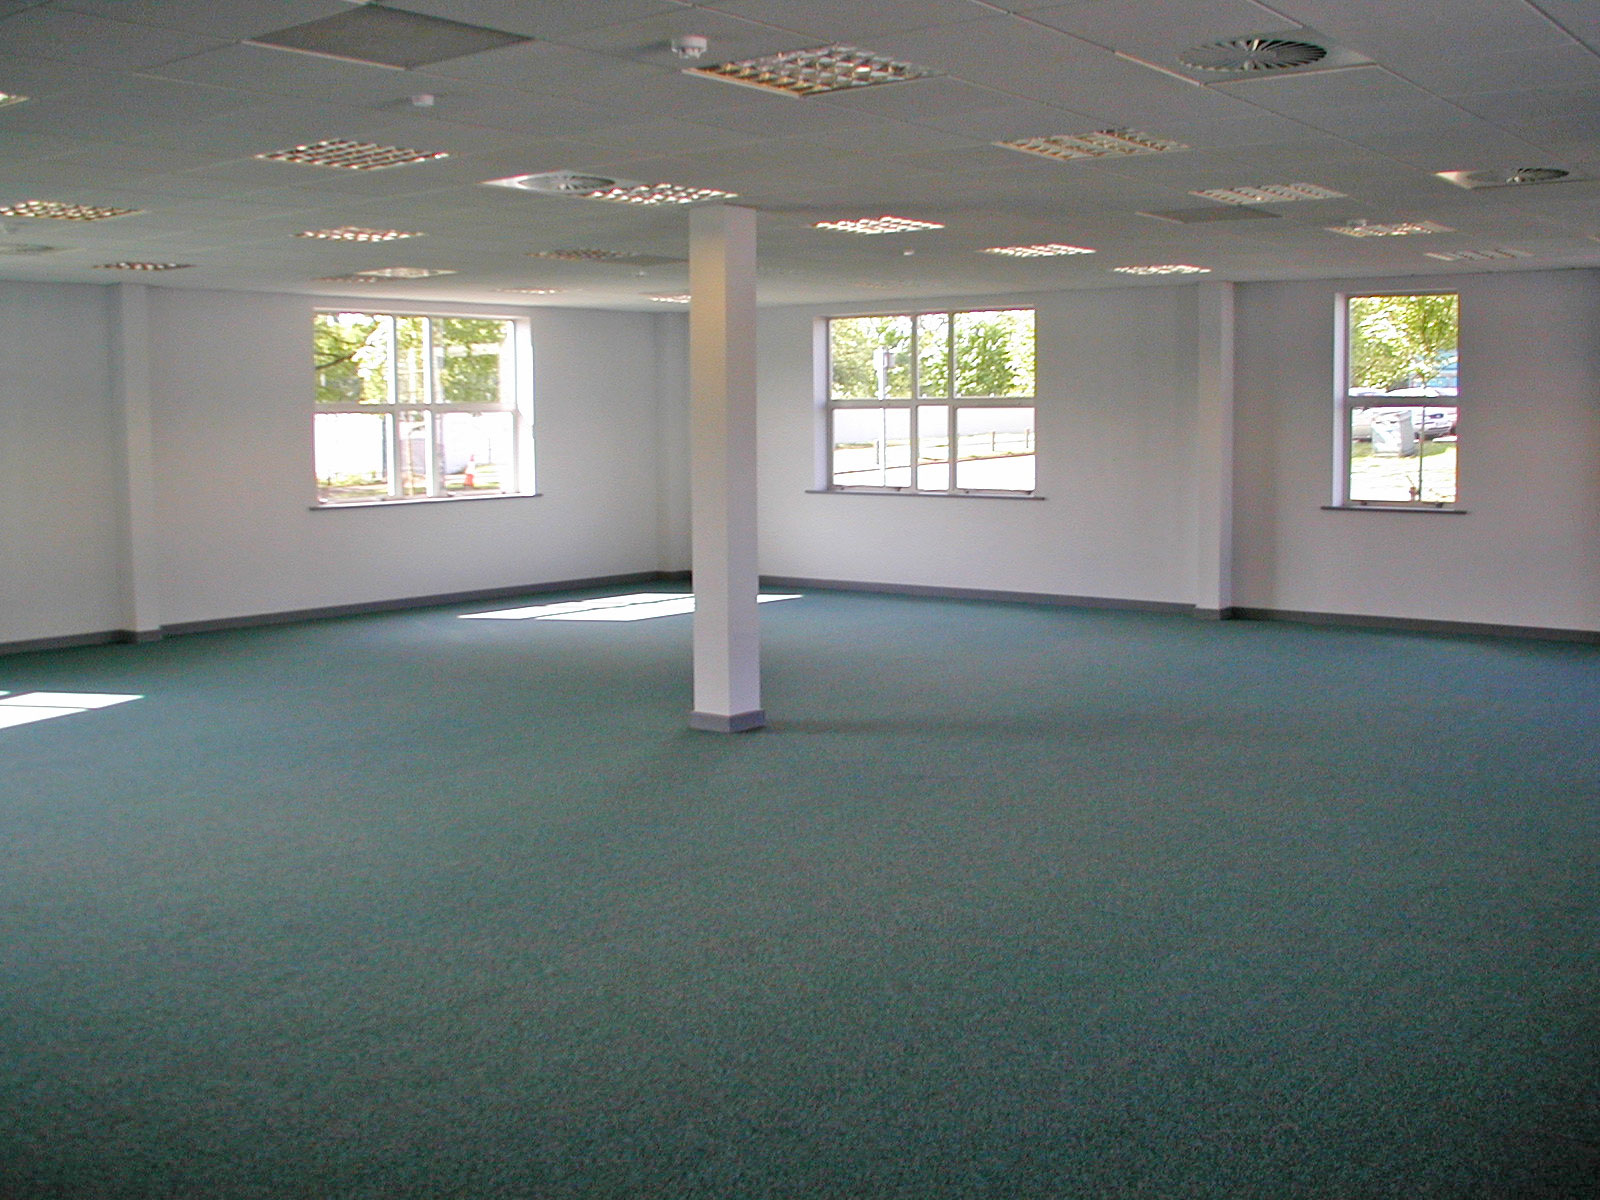 Office refurbishment conamar building services for Office refurbishment